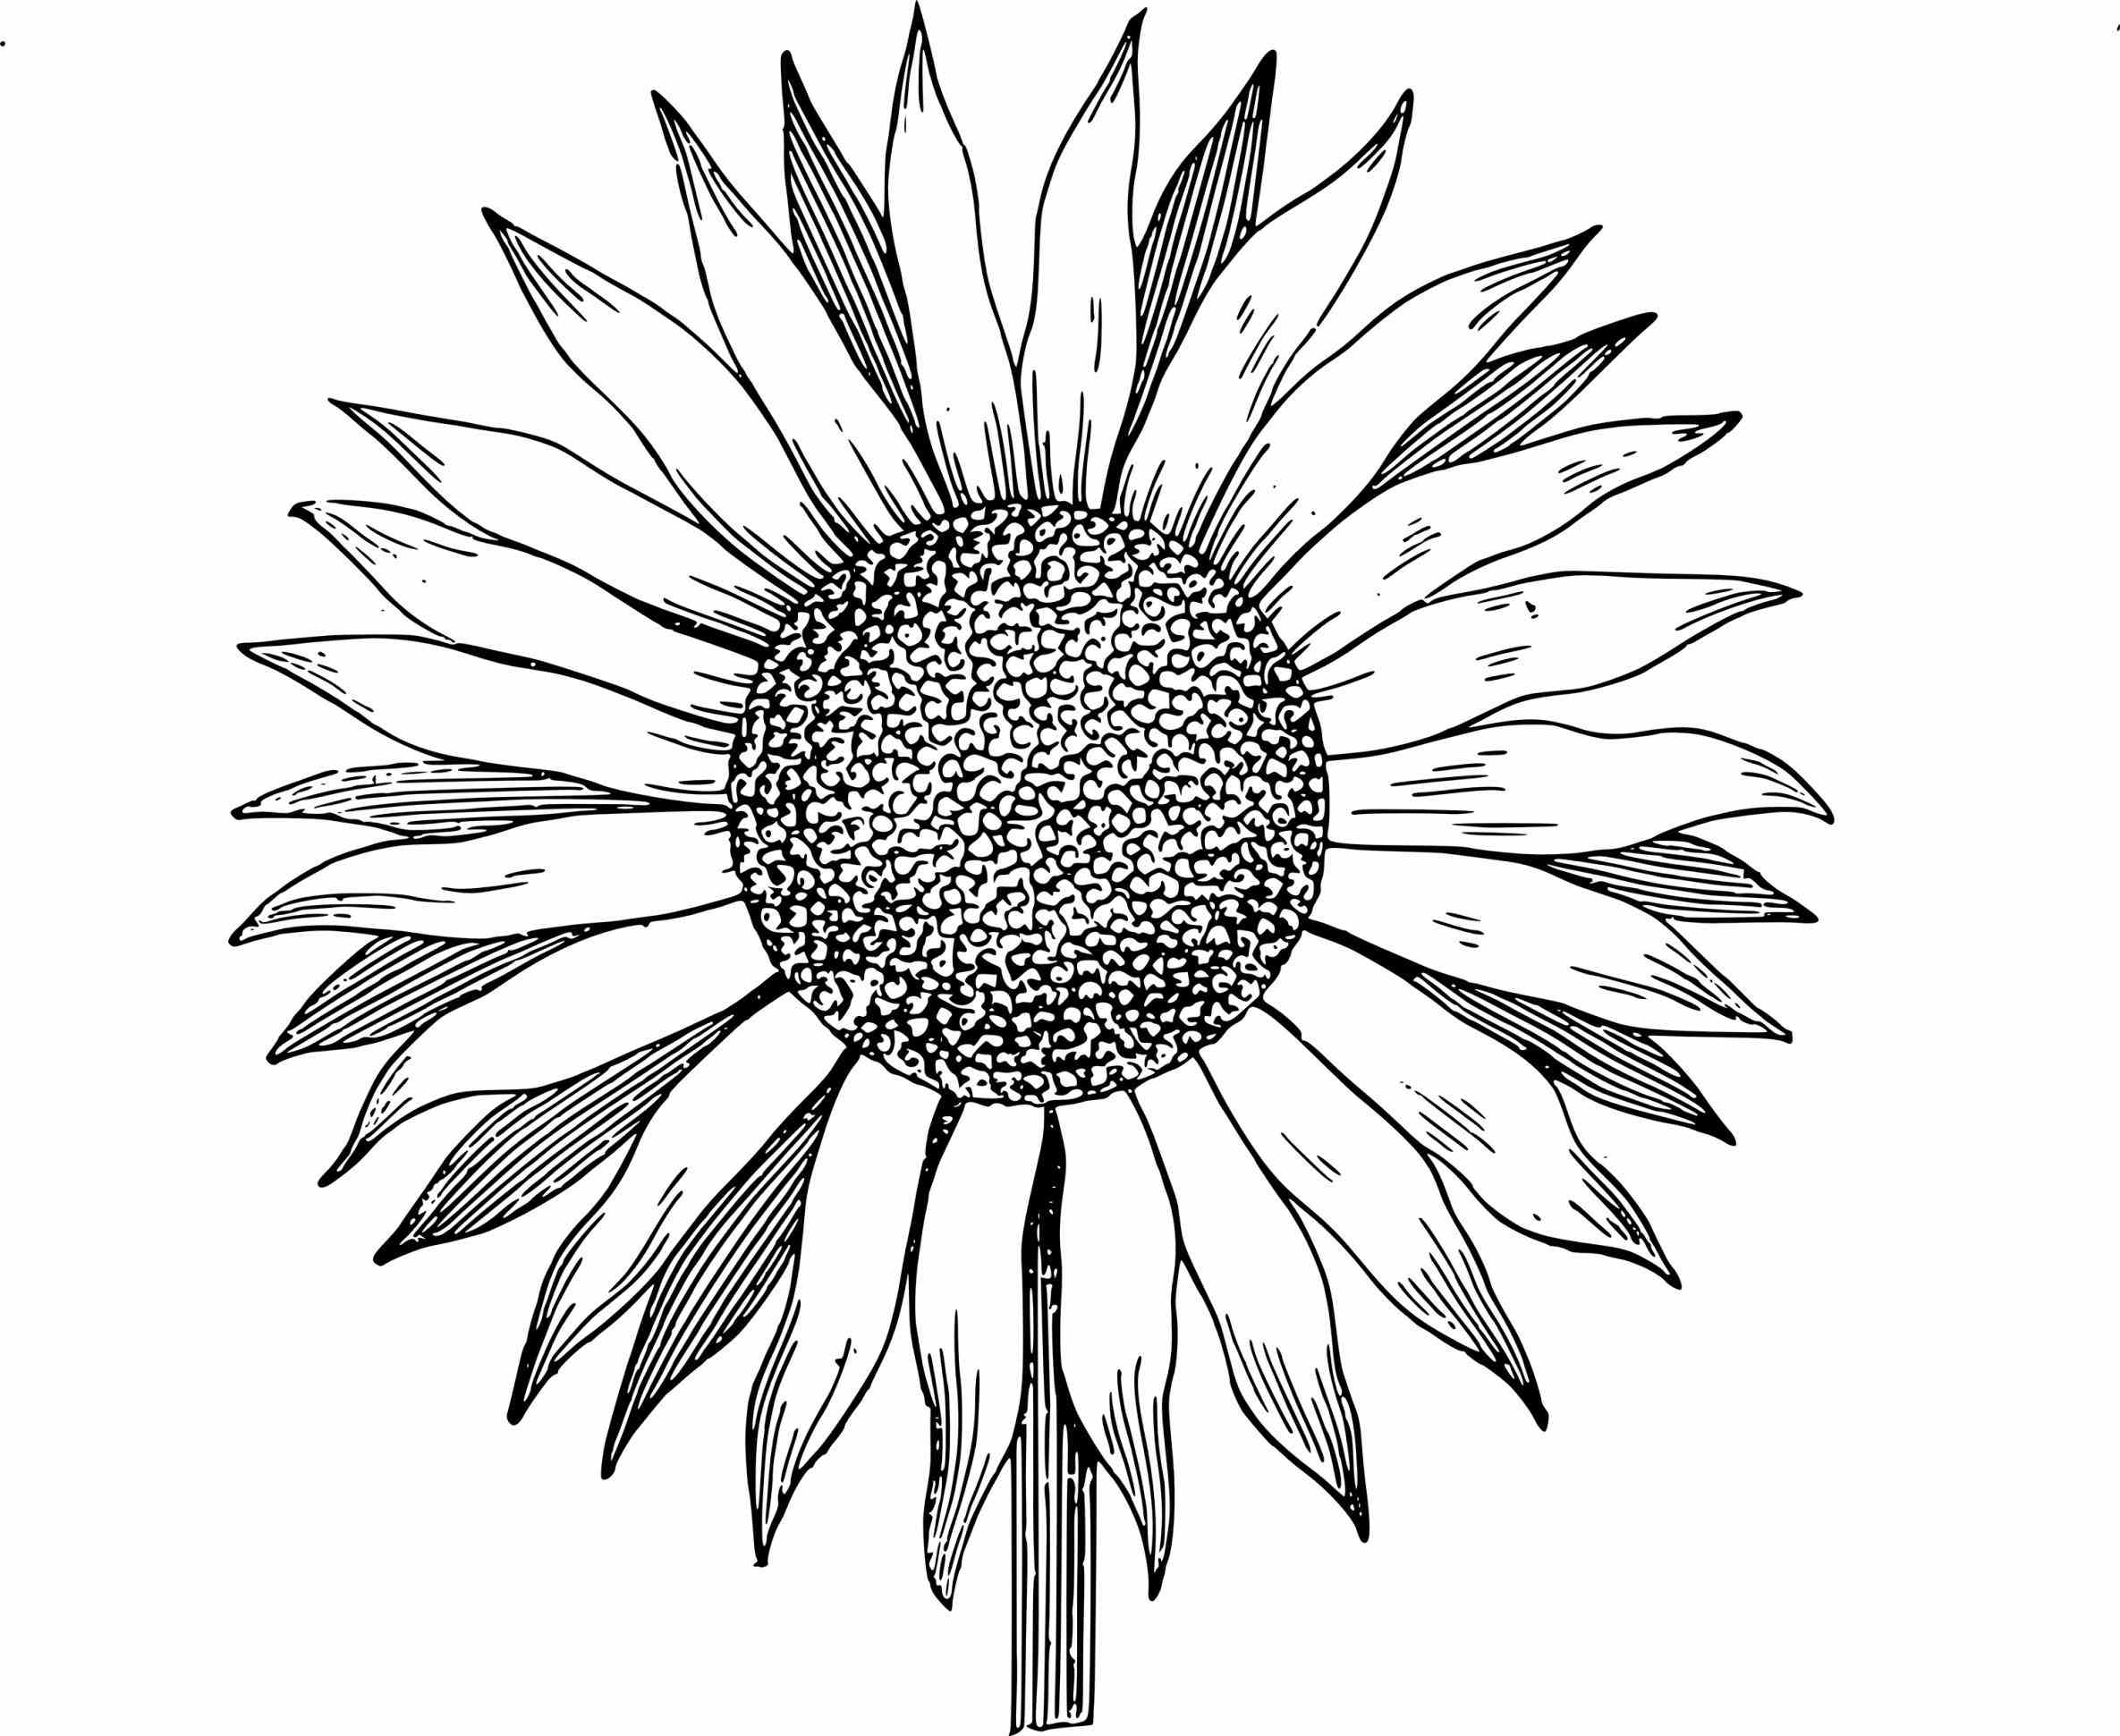 how to draw sunflowers easy tumblr sunflower drawing aesthetic elegants draw sunflowers how to